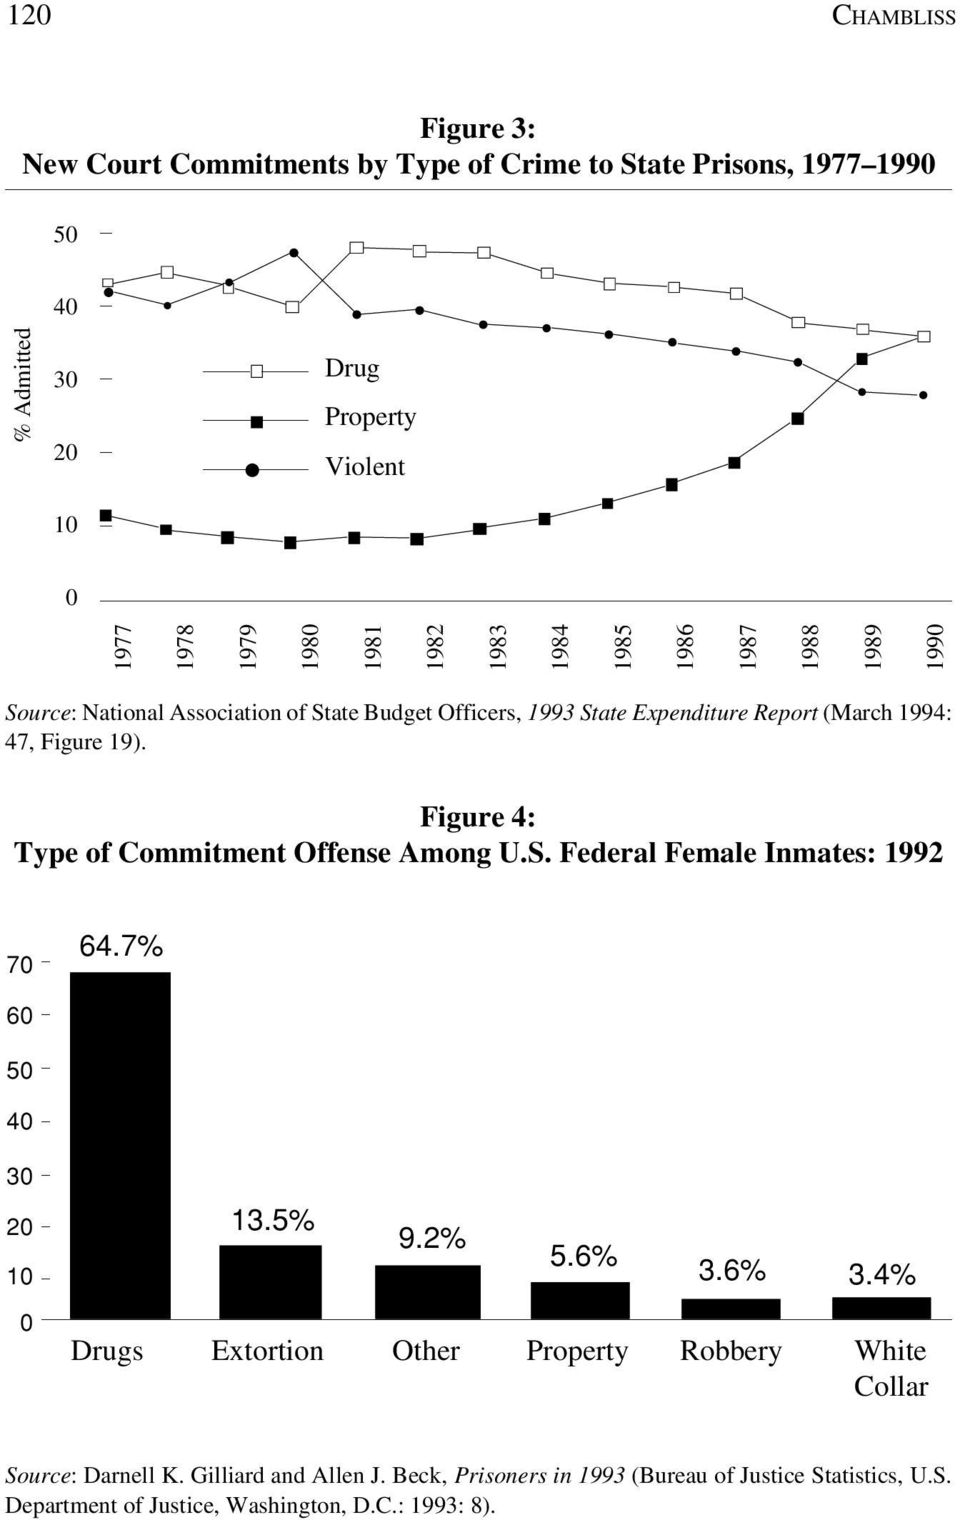 Figure 4: Type of Commitment Offense Among U.S. Federal Female Inmates: 1992 70 64.7% 60 50 40 30 20 10 0 13.5% 9.2% 5.6% 3.